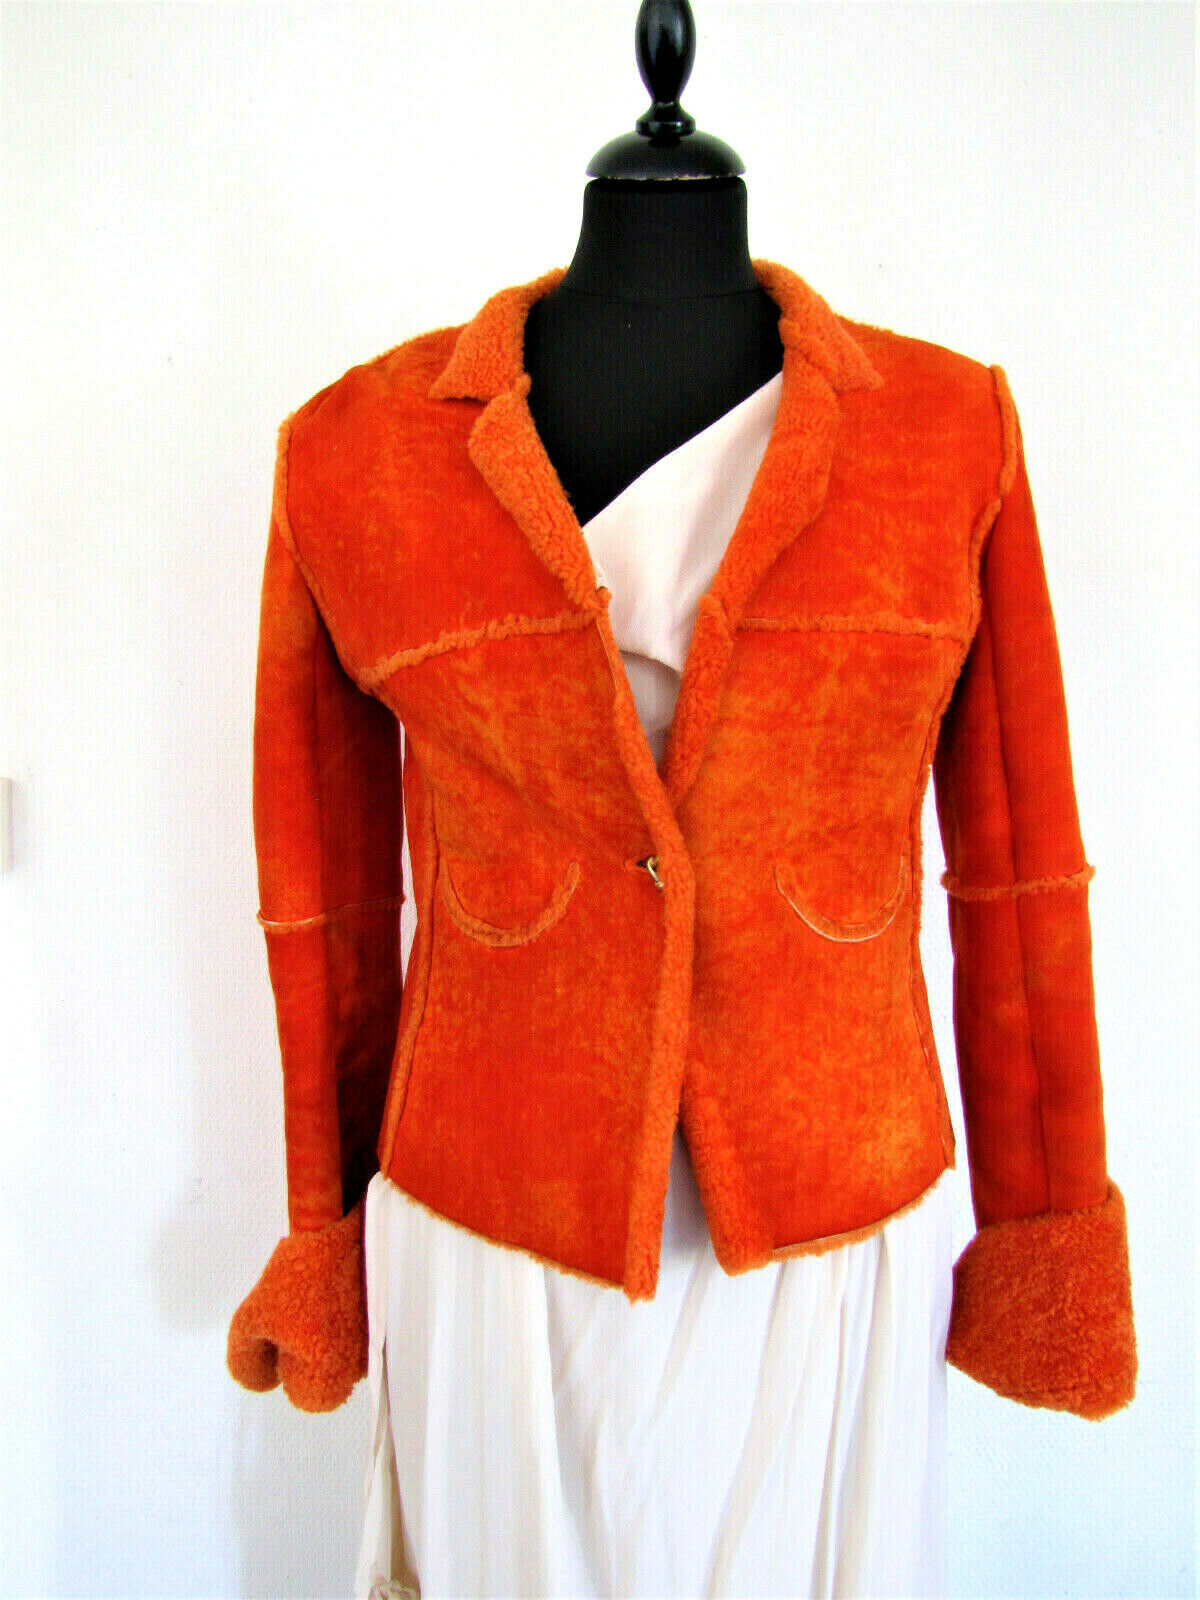 Chanel veste fourrure fur mouton jacket leather,36 s france lumineuse tie&dye